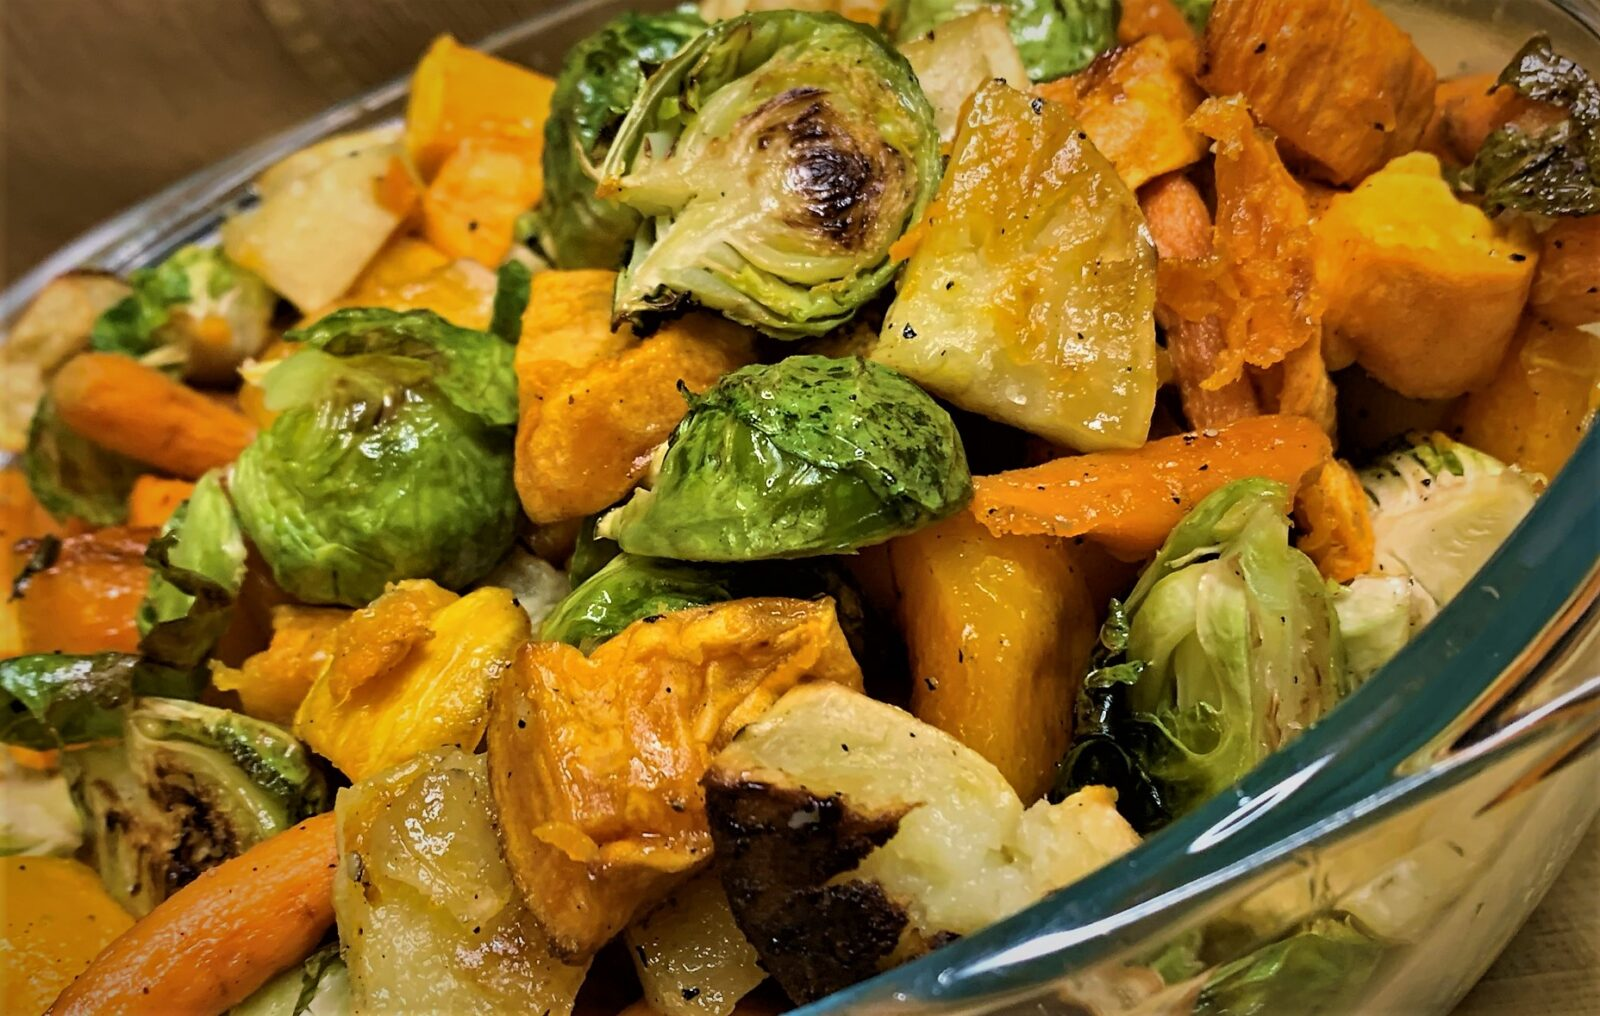 Our completed Roasted Fall Vegetable Medley